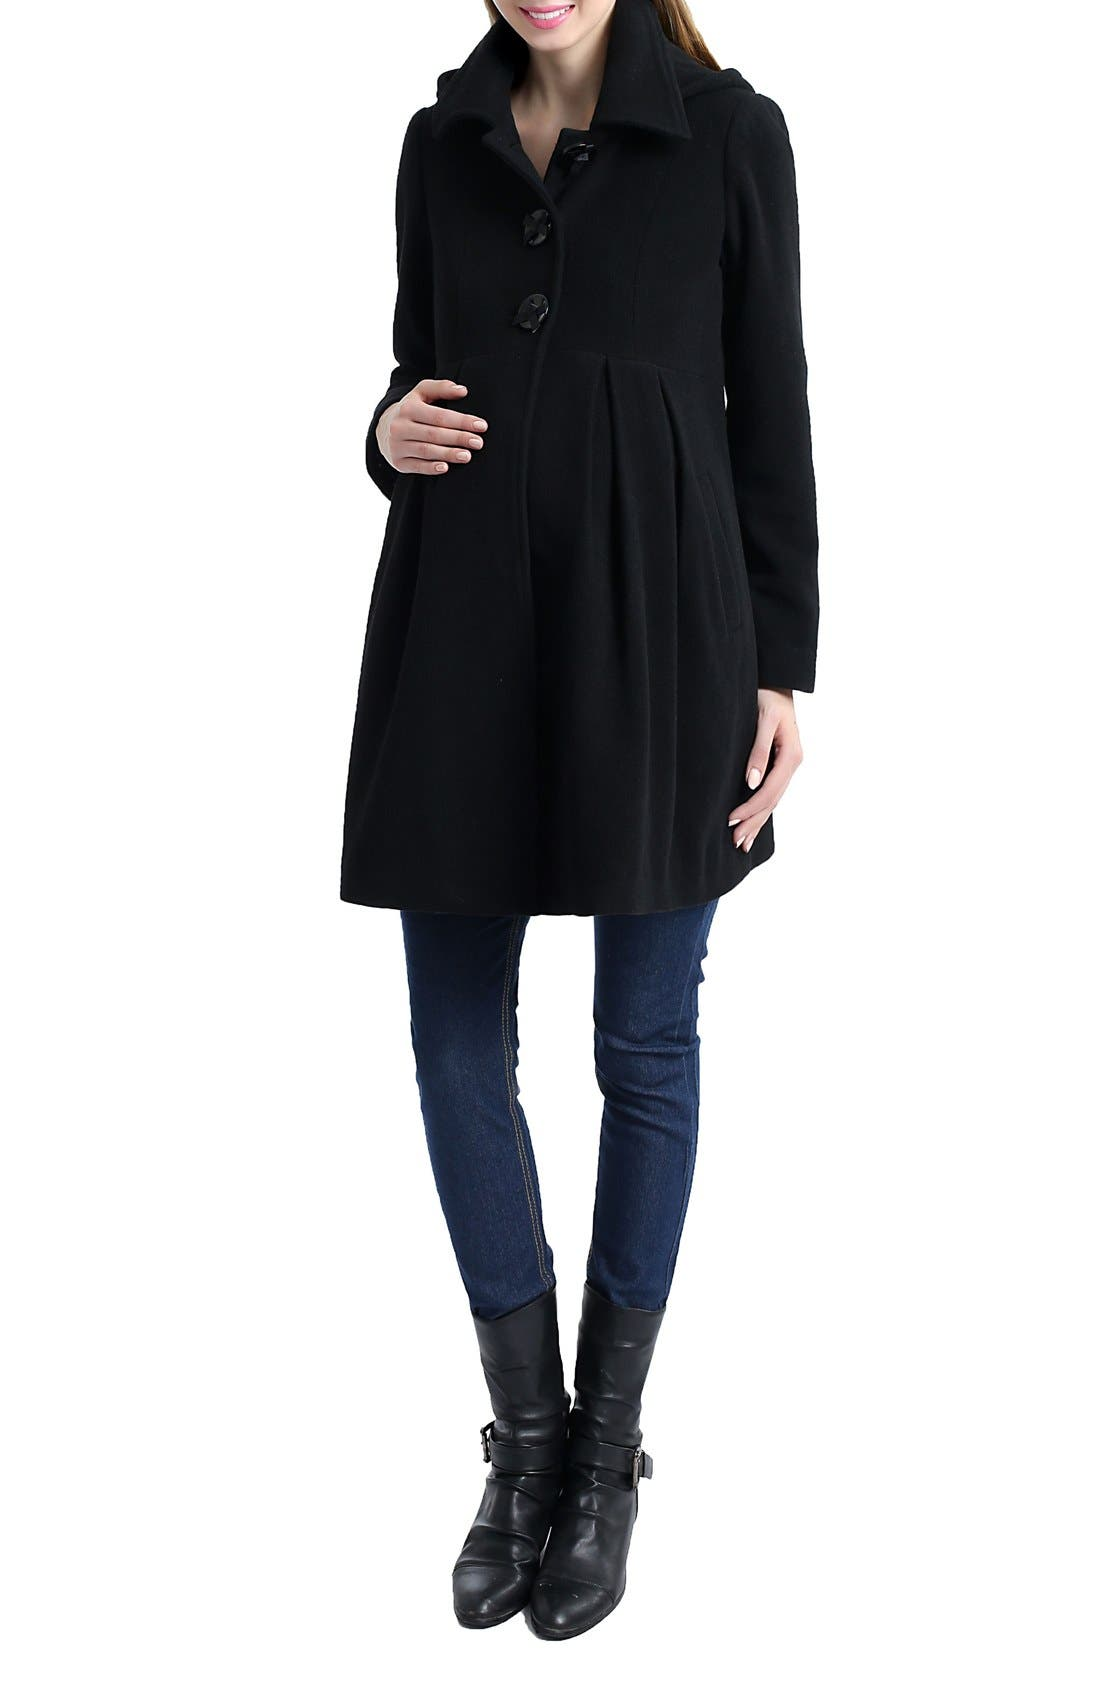 KIMI AND KAI, Faye Hooded Maternity Peacoat, Alternate thumbnail 3, color, 001